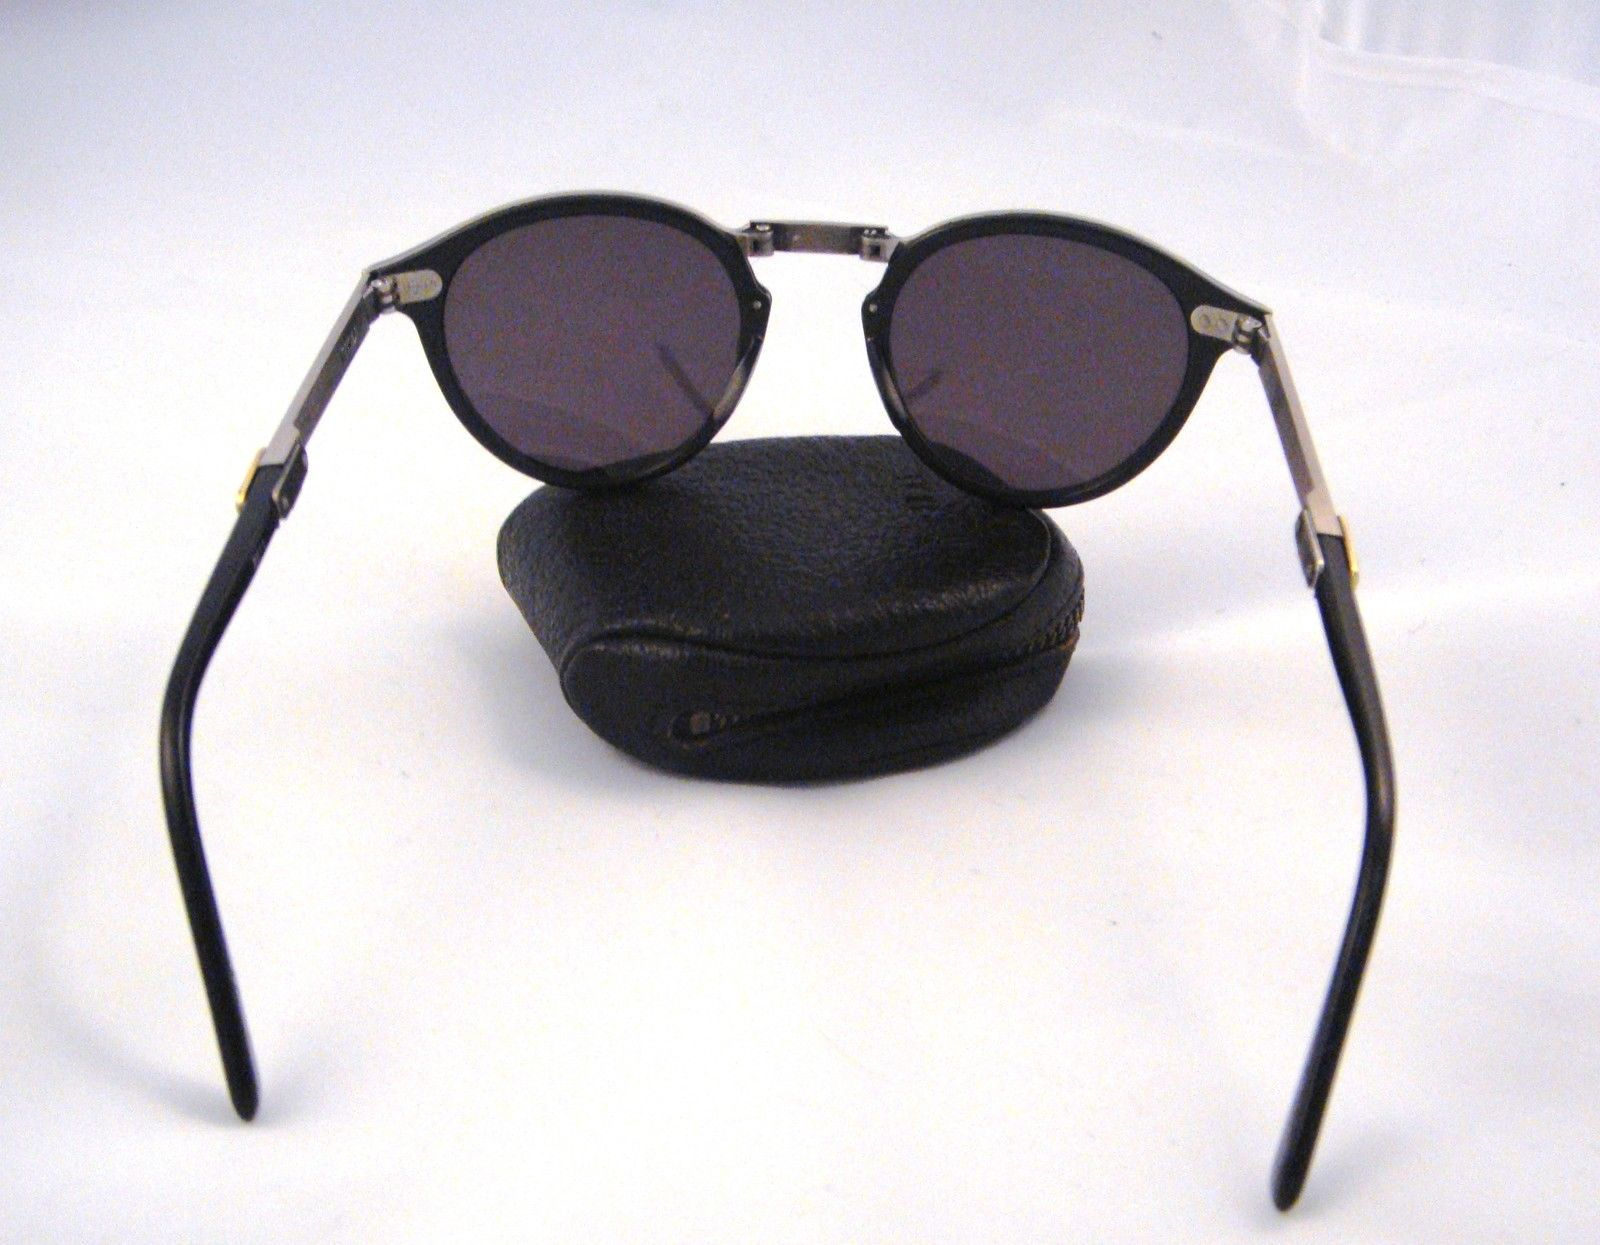 buy online online for sale various colors Matsuda 2811 Folding Vintage Sunglasses Mens | eBay ...